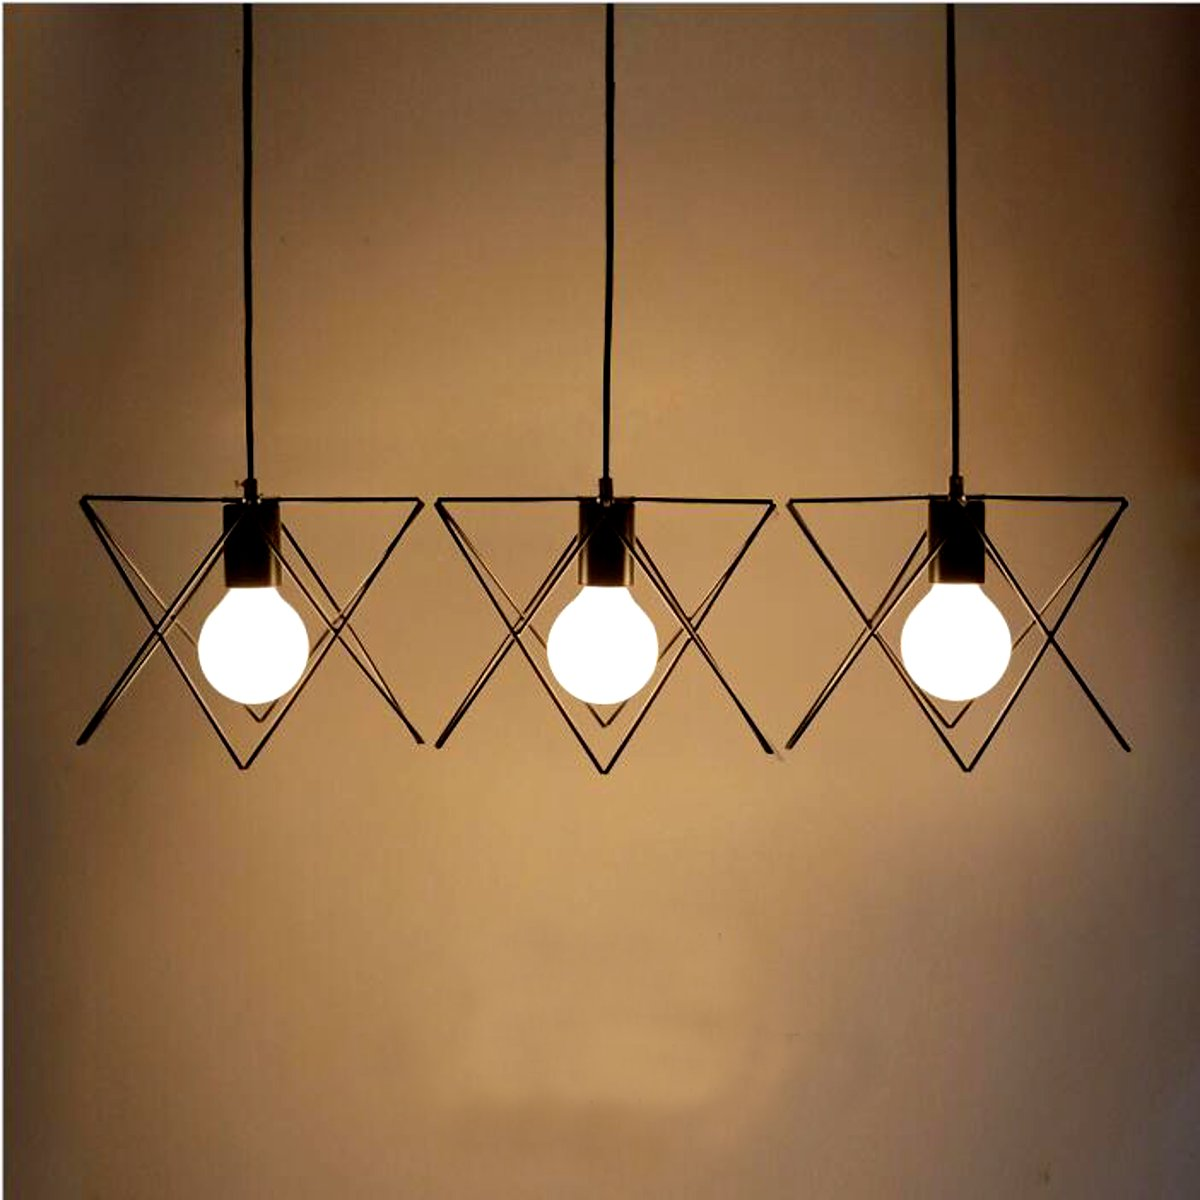 3 In 1 Metal Vintage Ceiling Light Pendant Lamp Cage